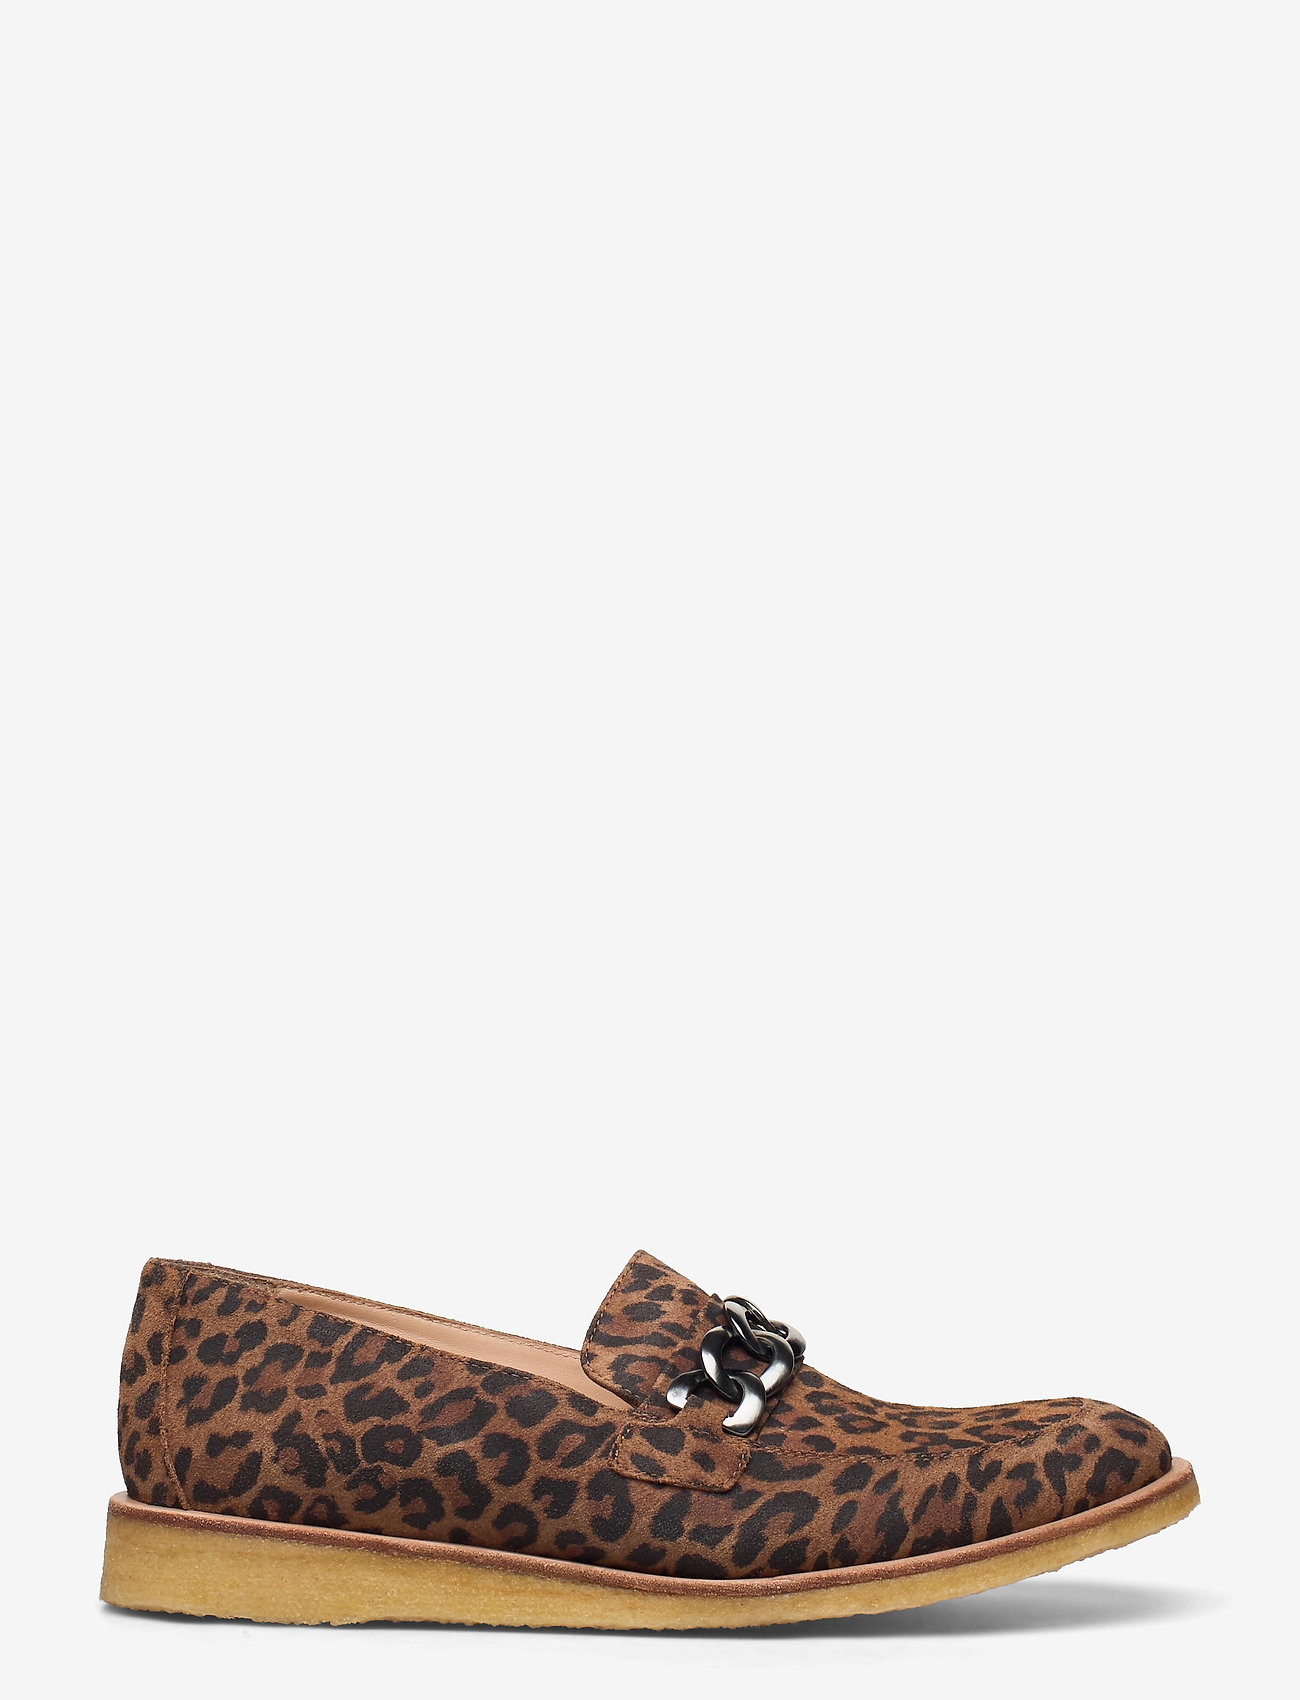 ANGULUS - Loafer - flat - loafers - 2164 leopard - 1